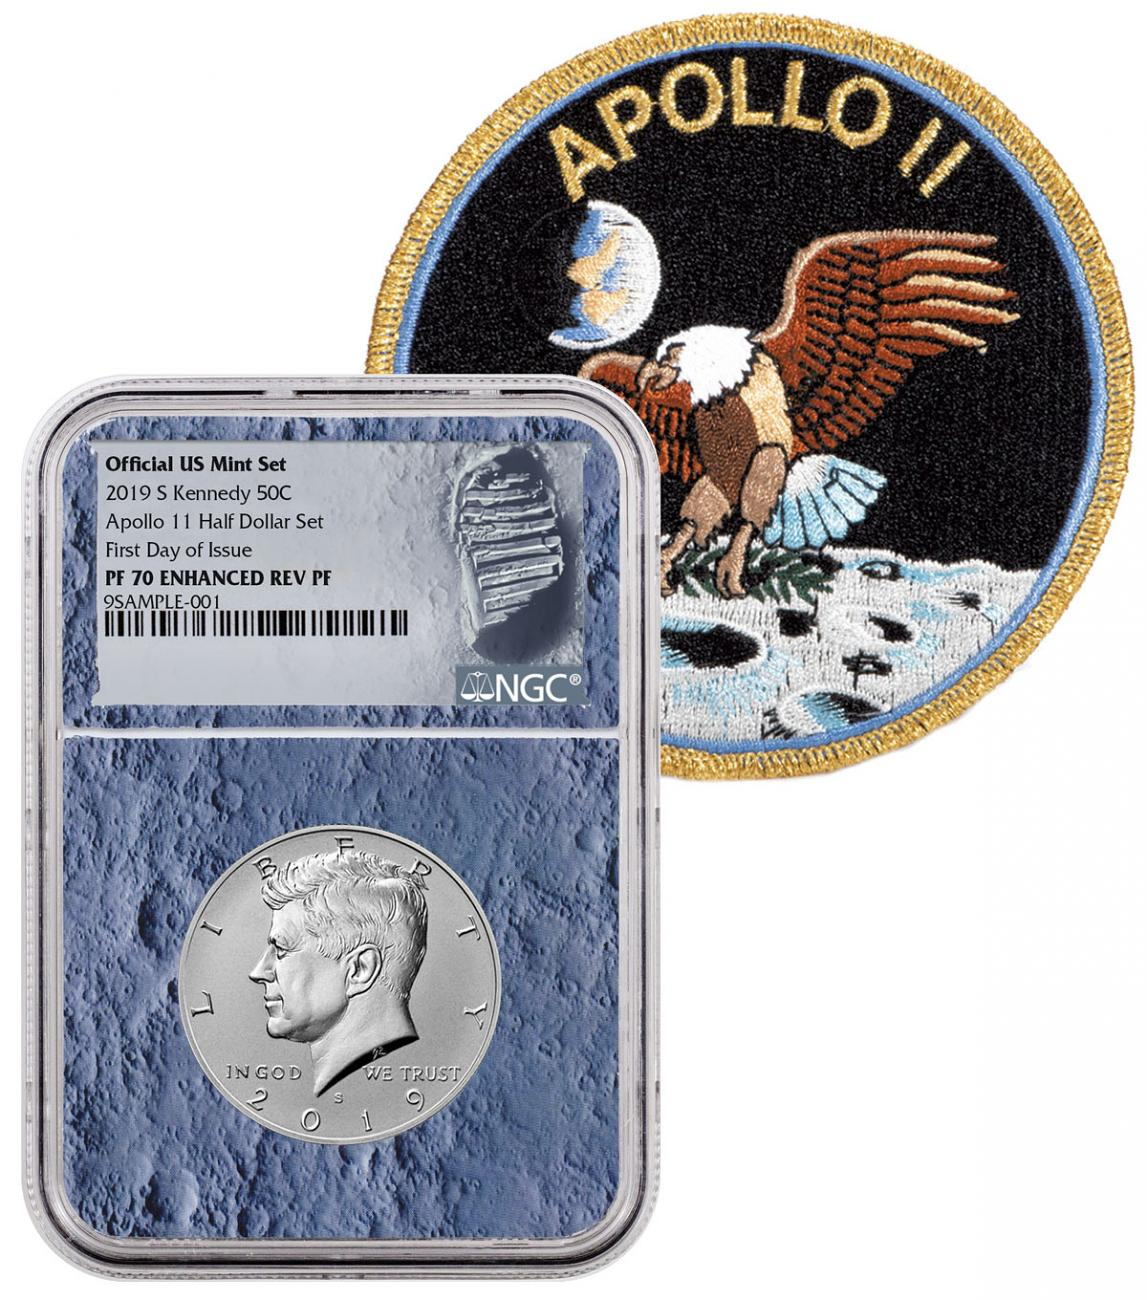 2019-S Cupronickel Enhanced Reverse Proof Kennedy Half Dollar From Apollo 11 Half Dollar Set NGC PF70 FDI With Apollo 11 Mission Patch Moon Core Holder Moon Label